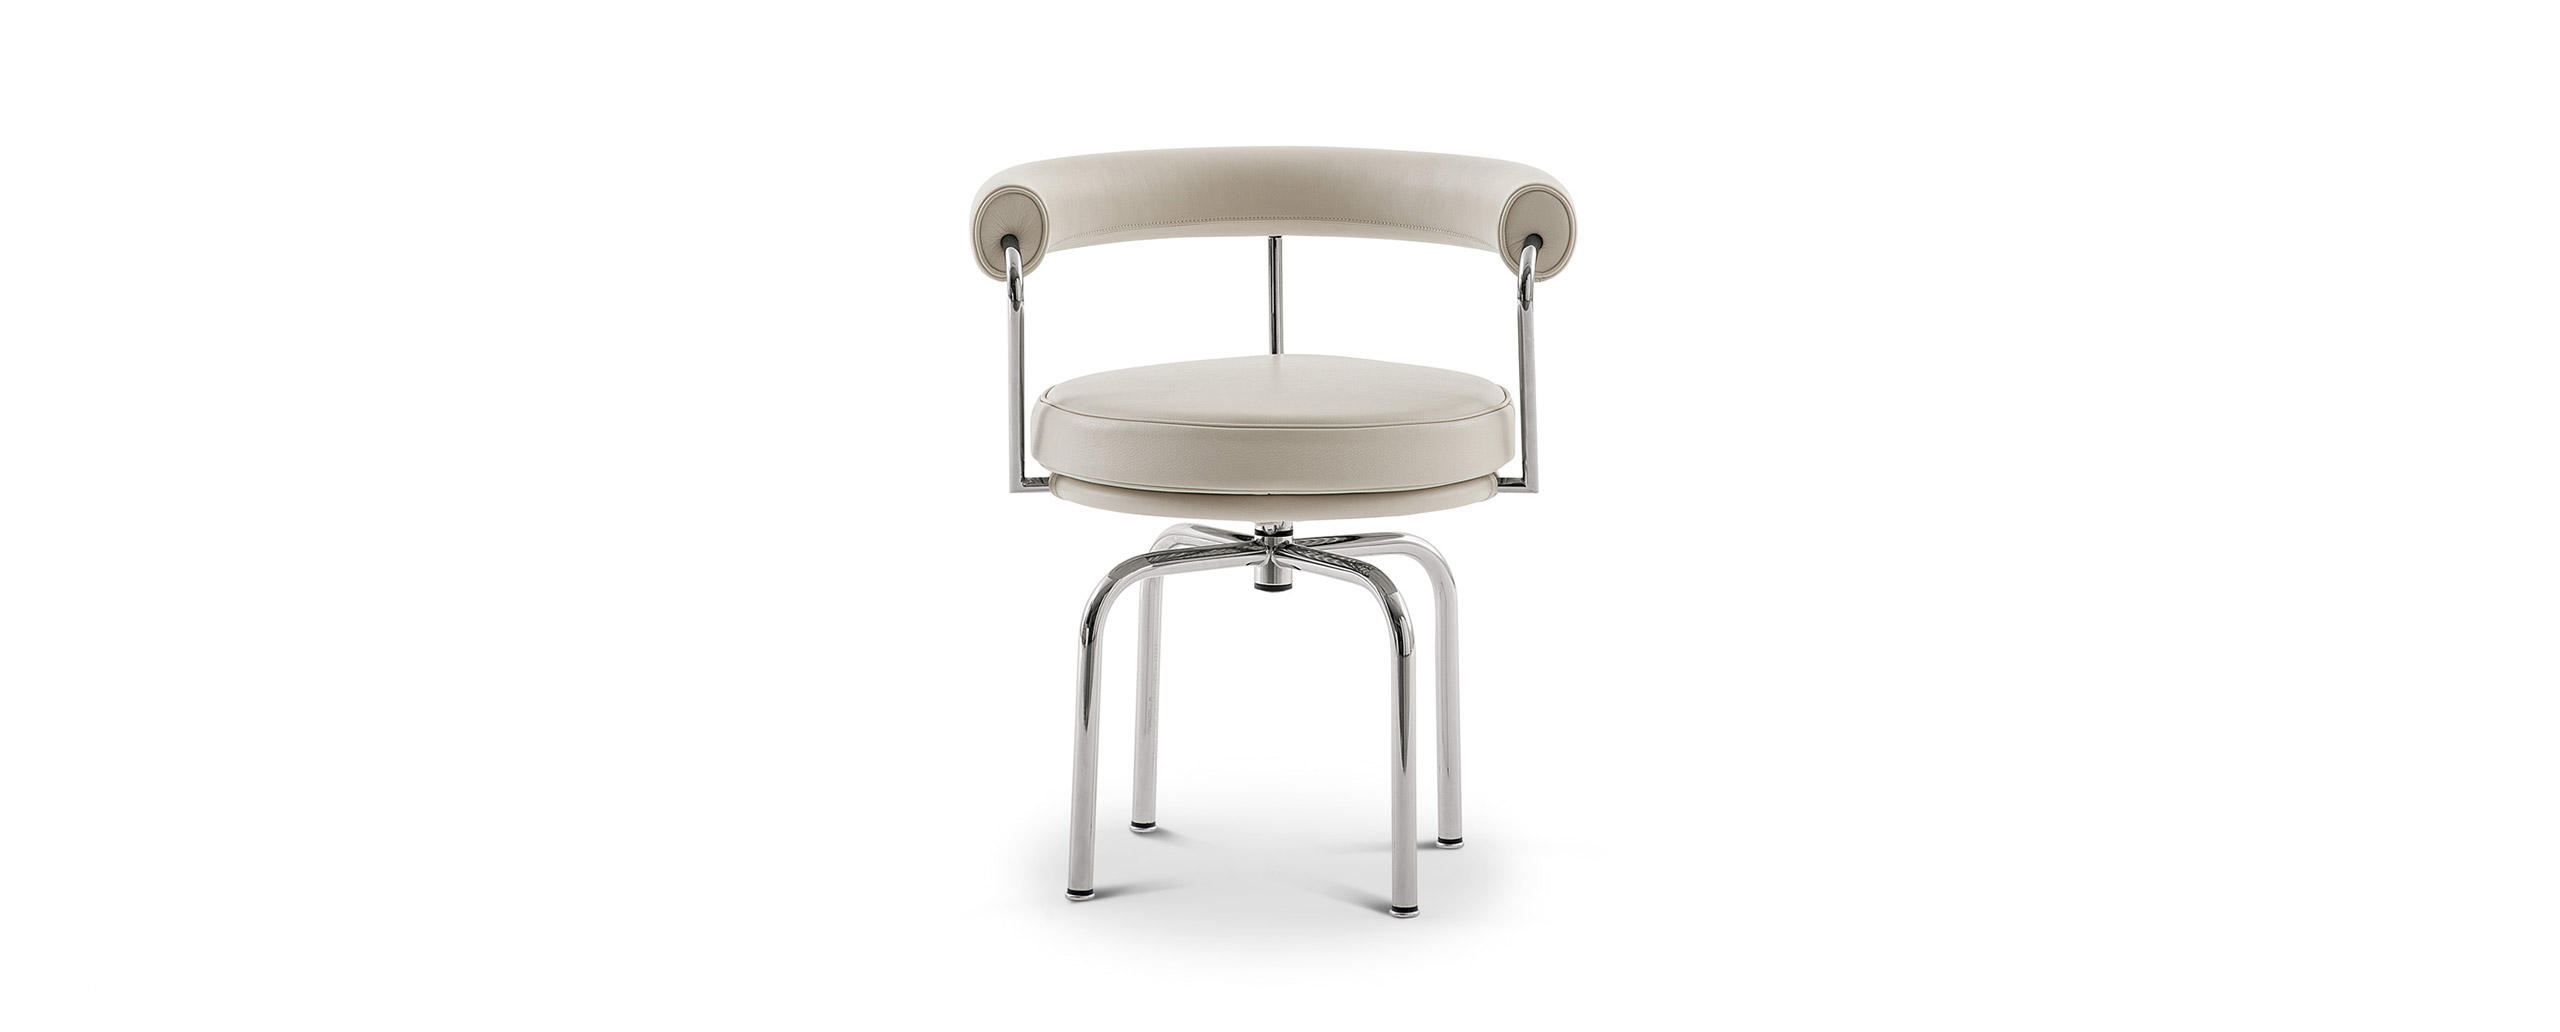 fauteuil-tournand-jeanneret-perriand-corbusier-lc7